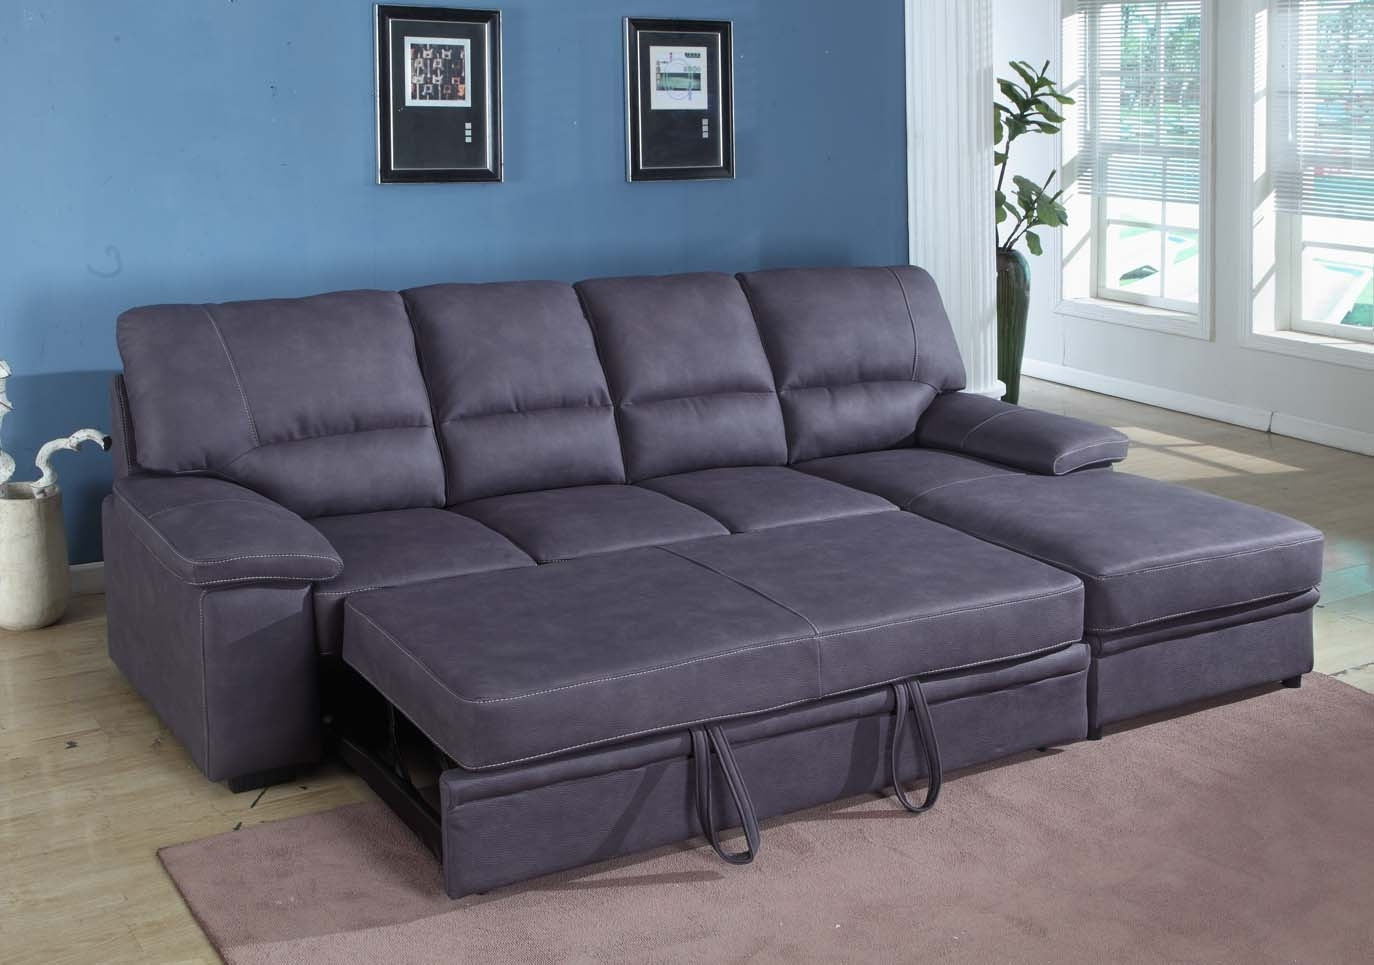 Furniture : Sleeper Sofa Eugene Oregon Mattress Firm Liberty Mo intended for Eugene Oregon Sectional Sofas (Image 9 of 10)